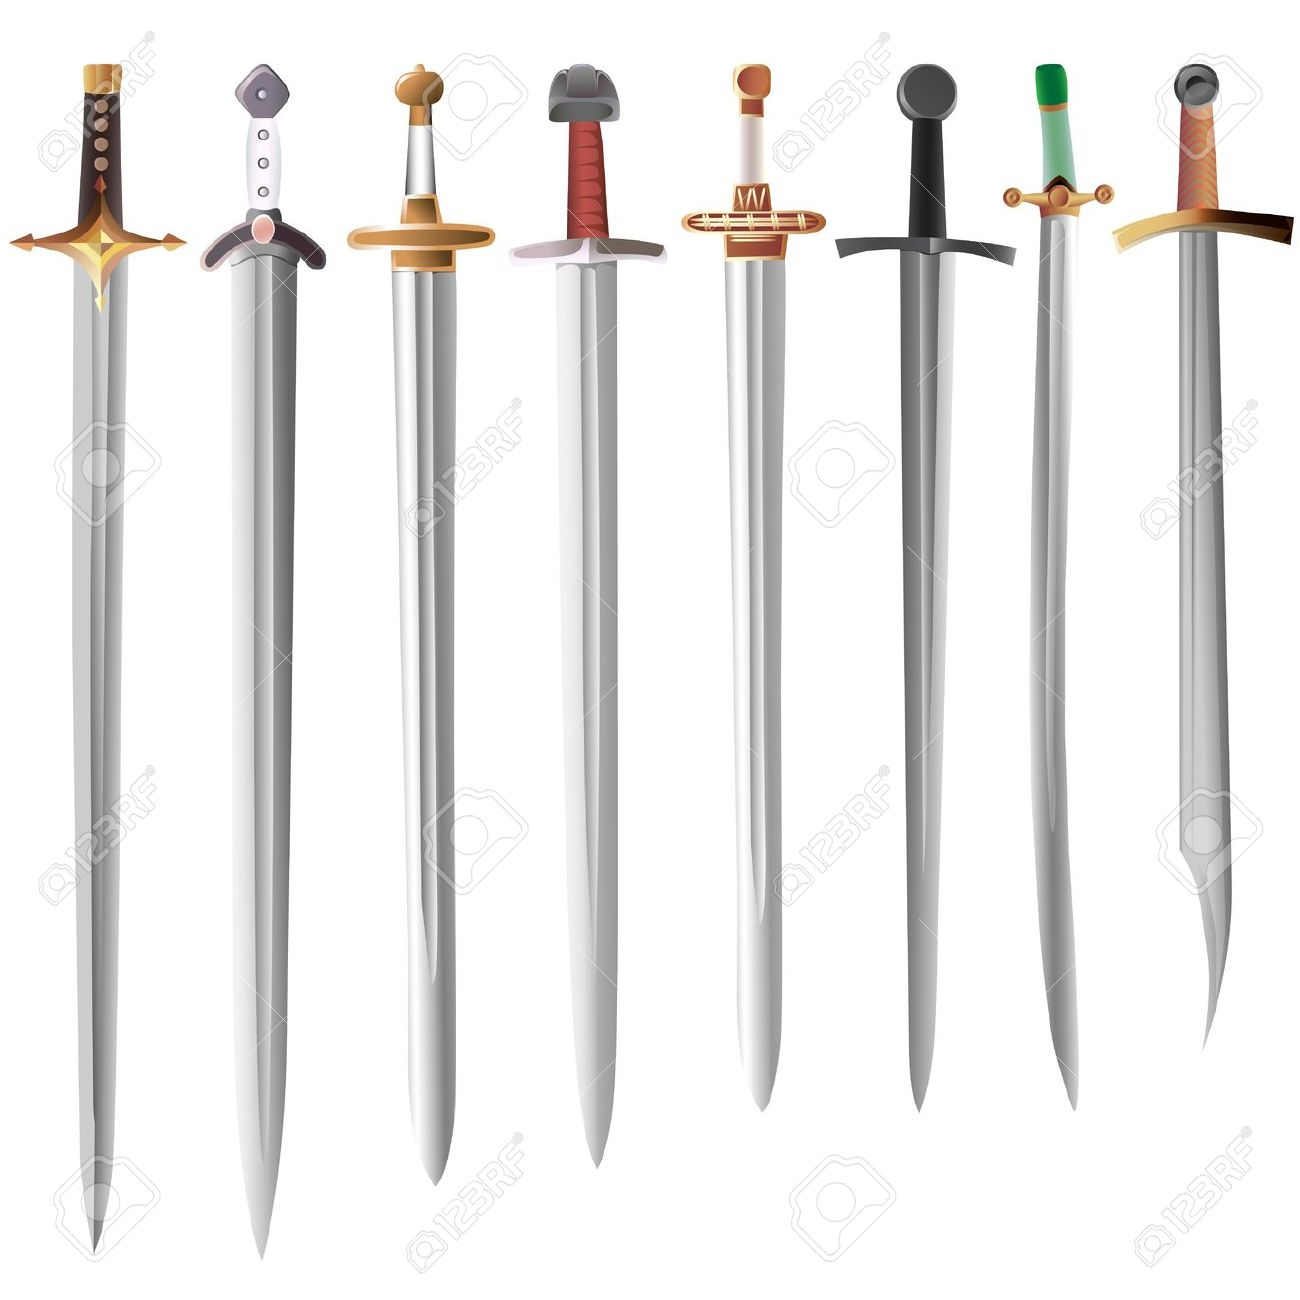 Set Of Medieval Swords With Different Hilts Royalty Free Cliparts.